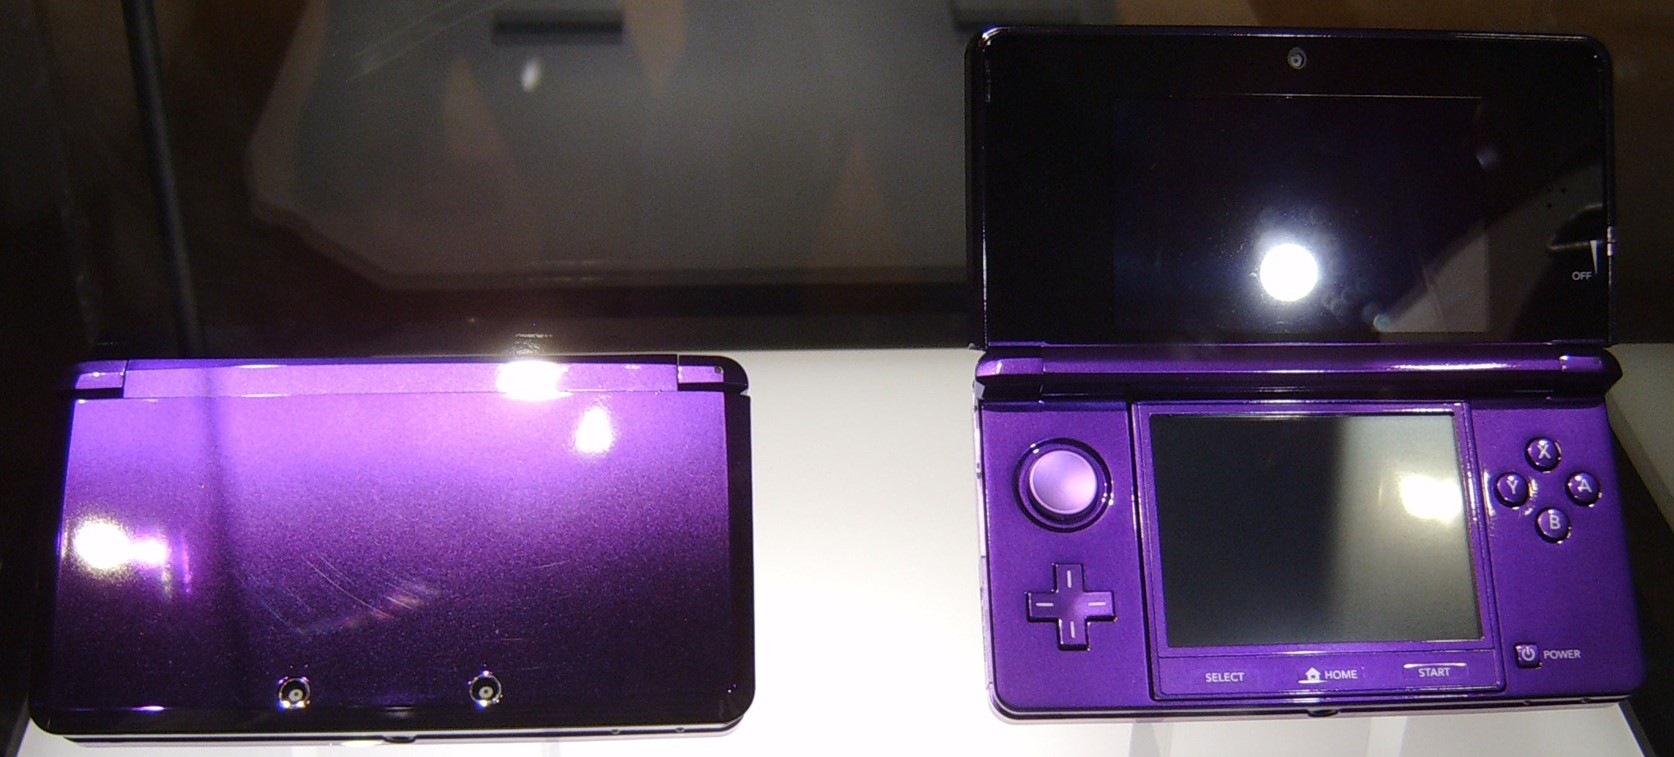 nintendo-3ds-midnight-purple